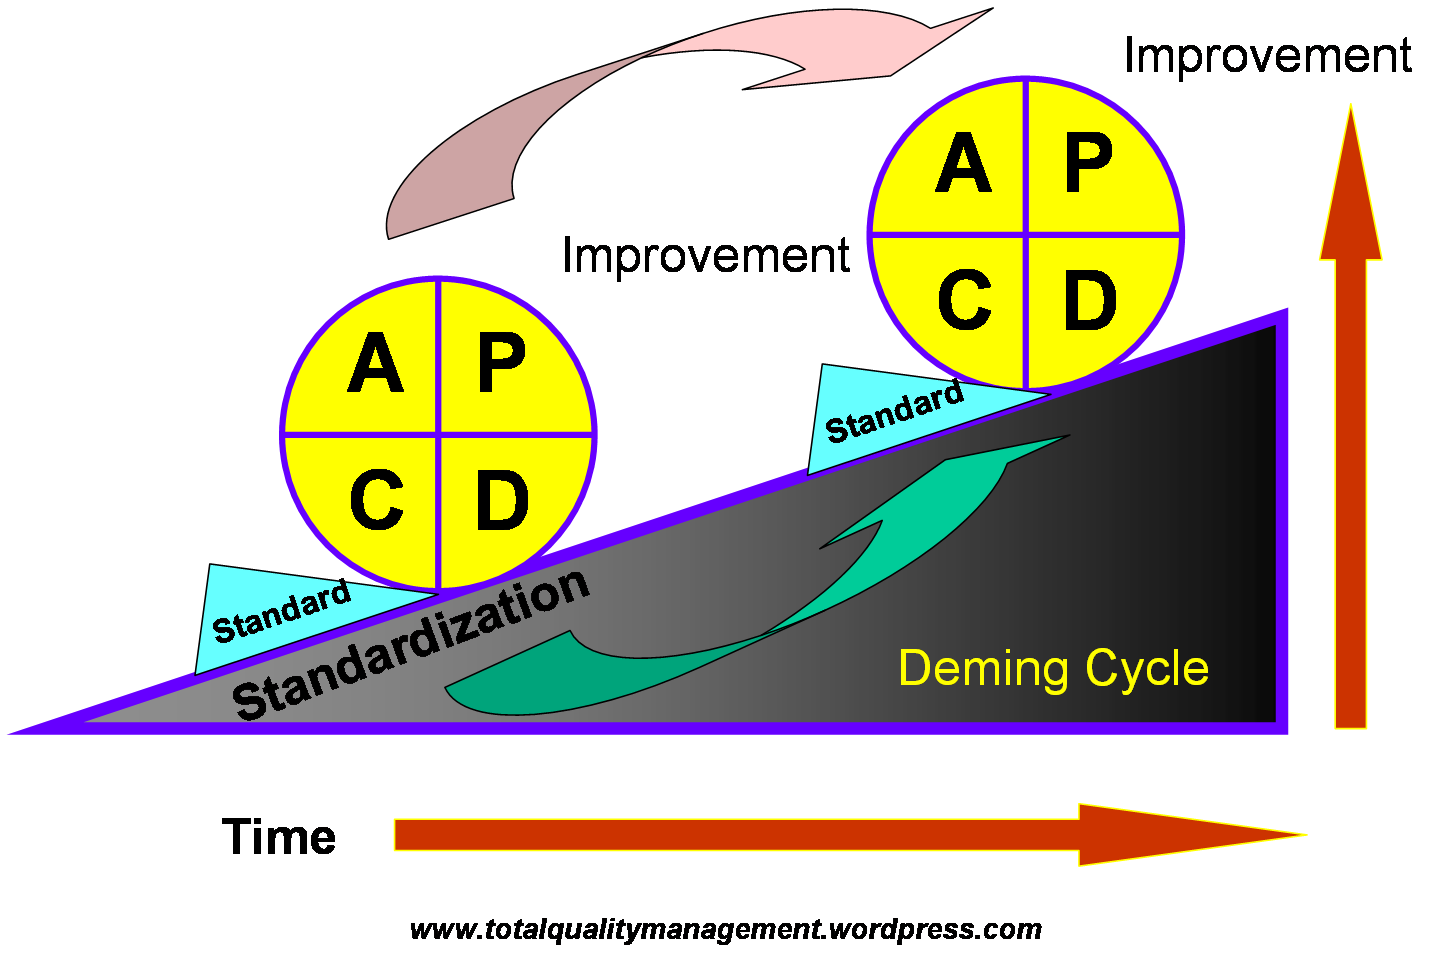 pdca cycle diagram mg tf 160 wiring gerry in mba blog ryerson university ted rogers